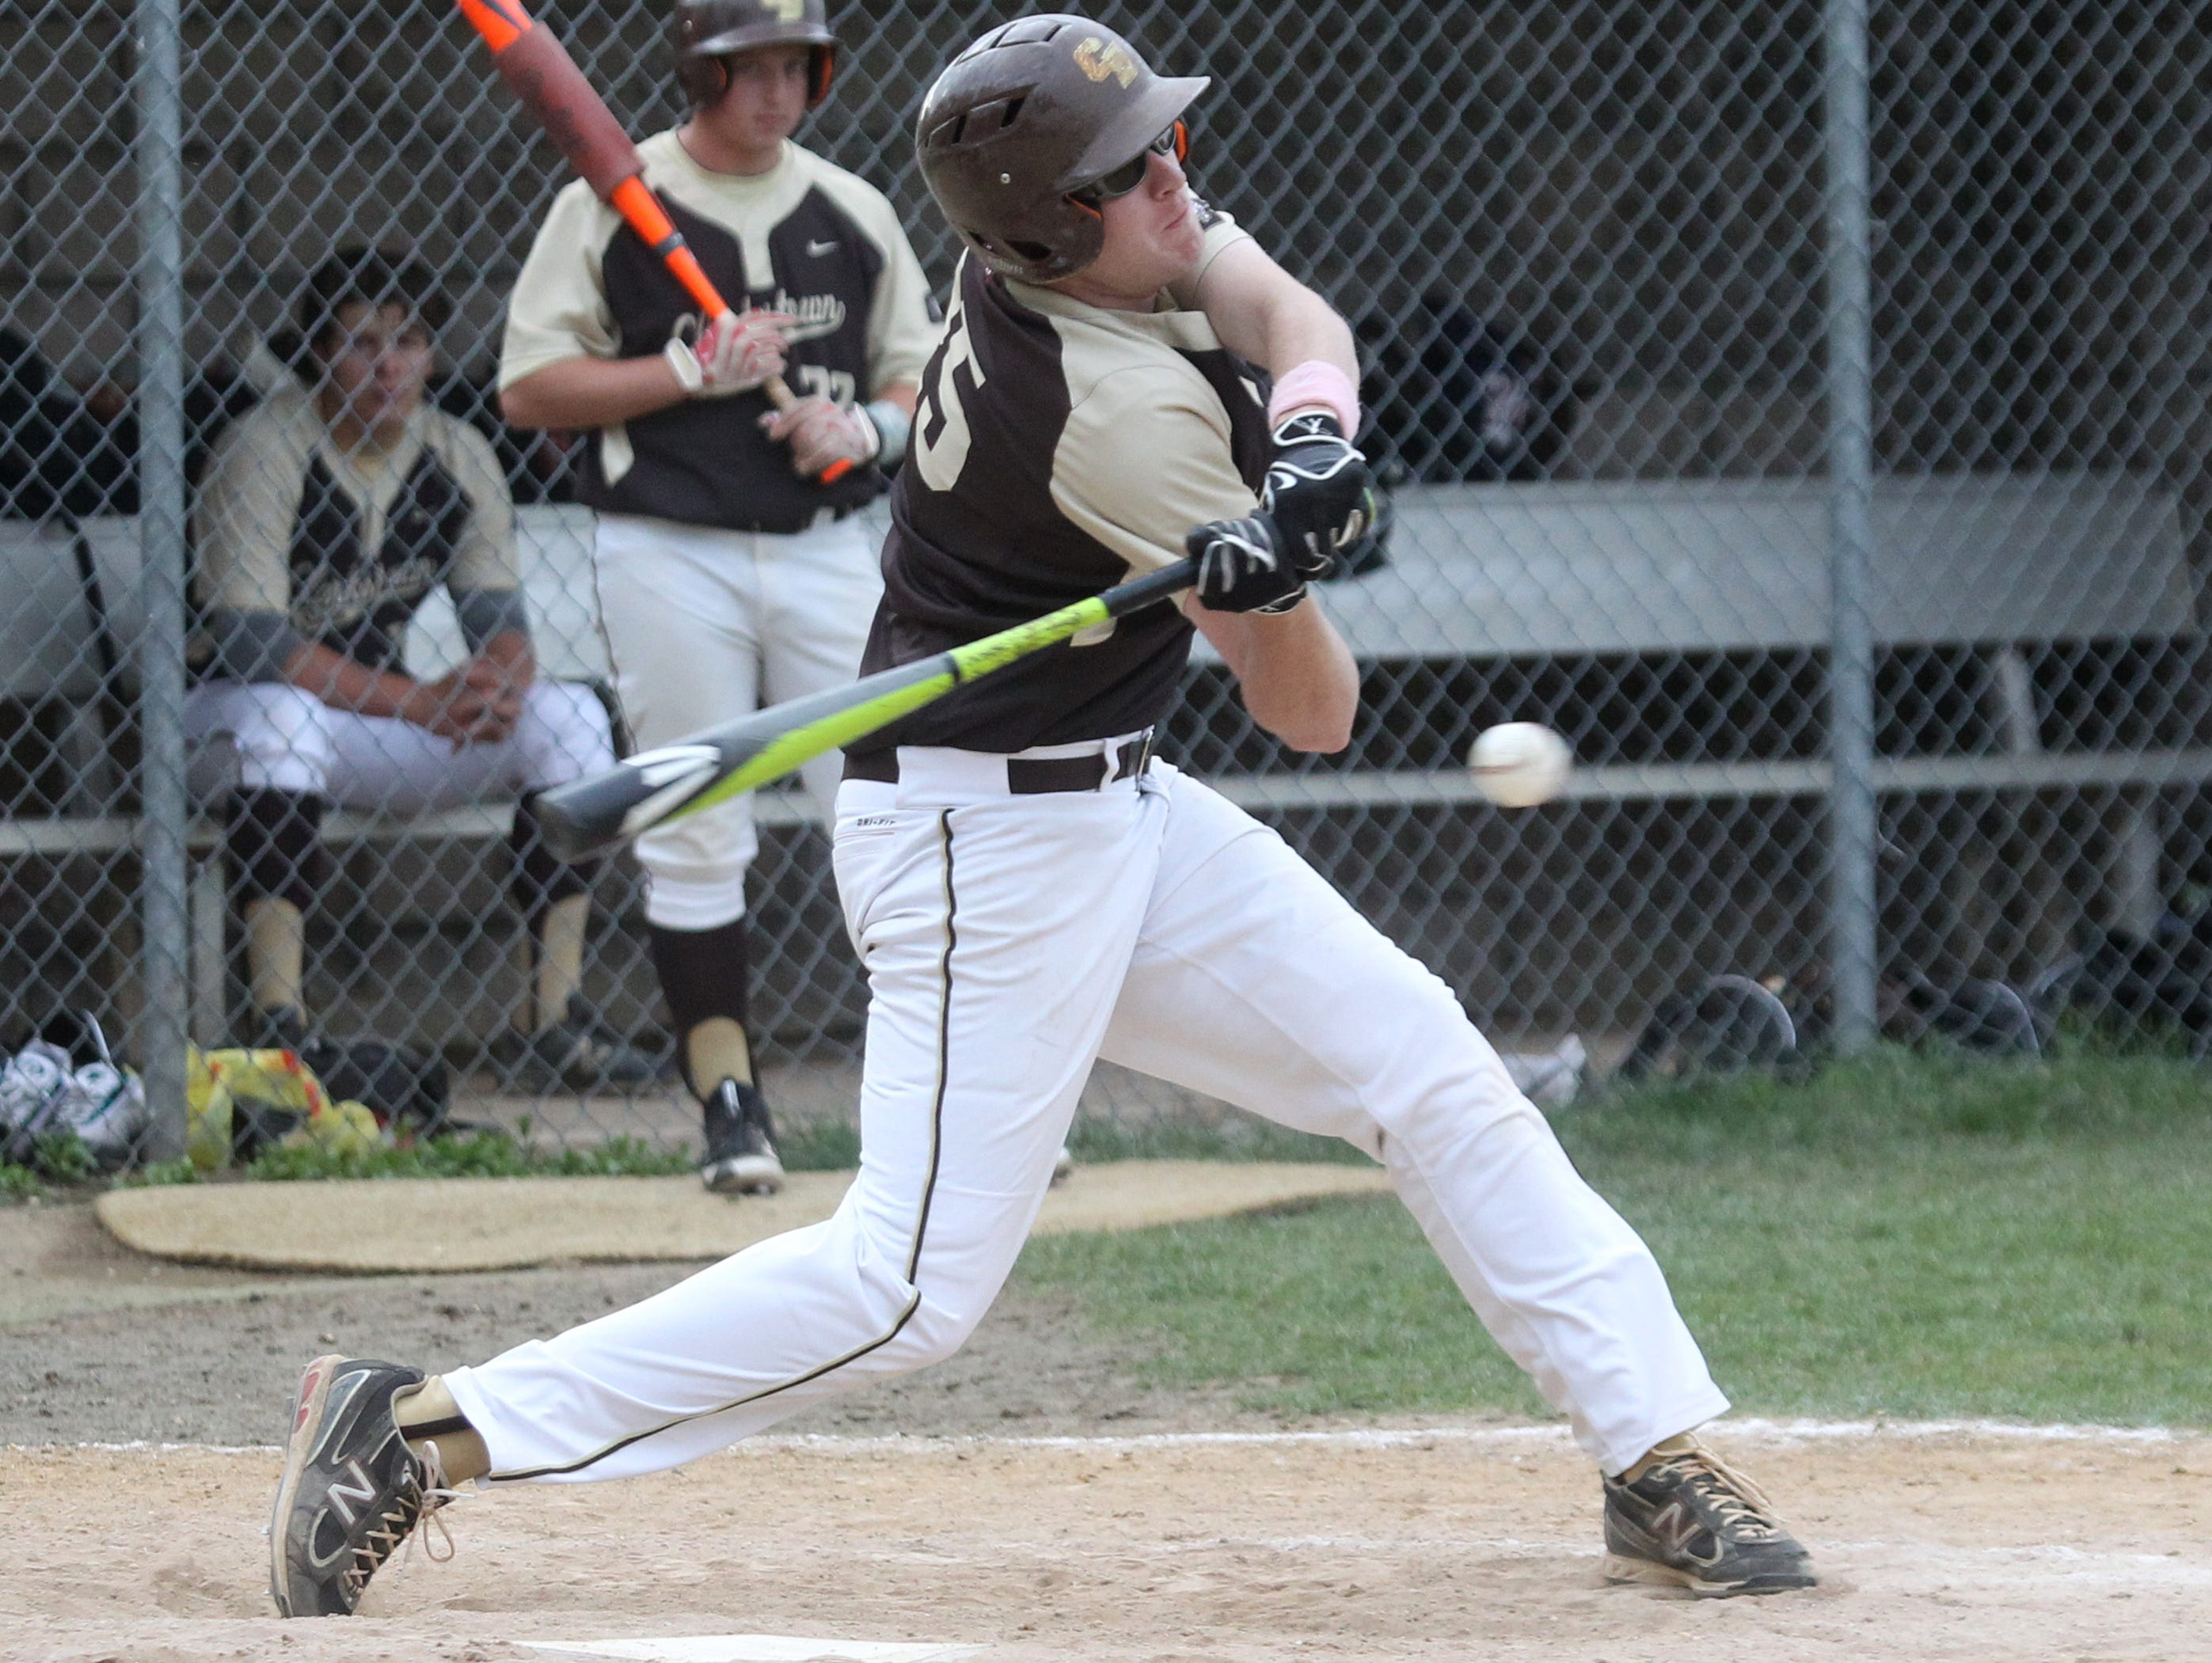 Clarkstown South's Tommy Doherty drives in two runs with a double during Tuesday's 15-4 win over Clarkstown North at South.